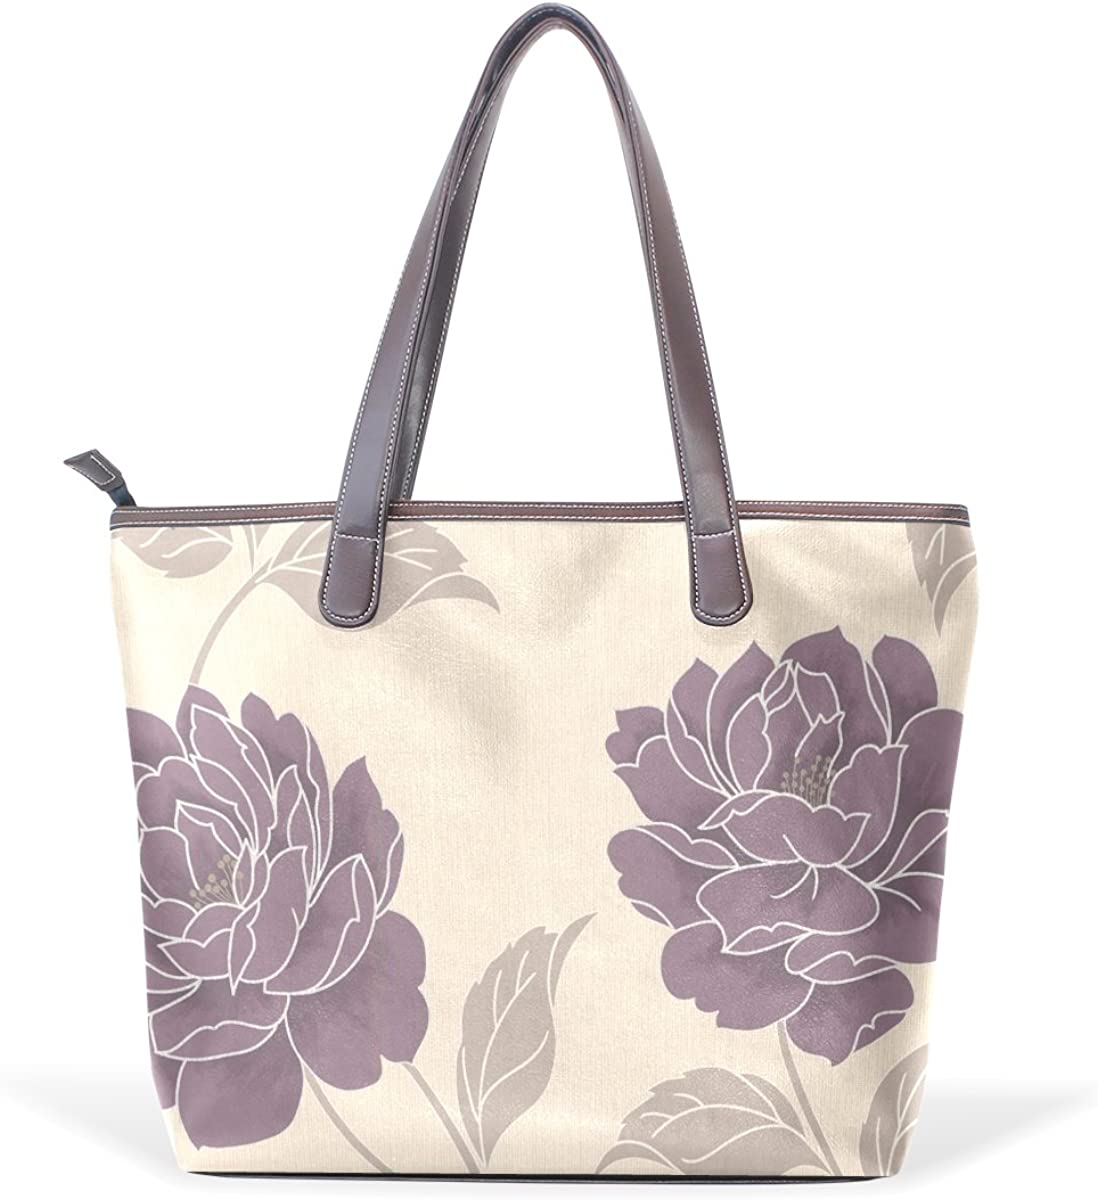 Sunlome Classic Plum Floral Handbags For Women Girls PU Leather Shoulder Tote Bag